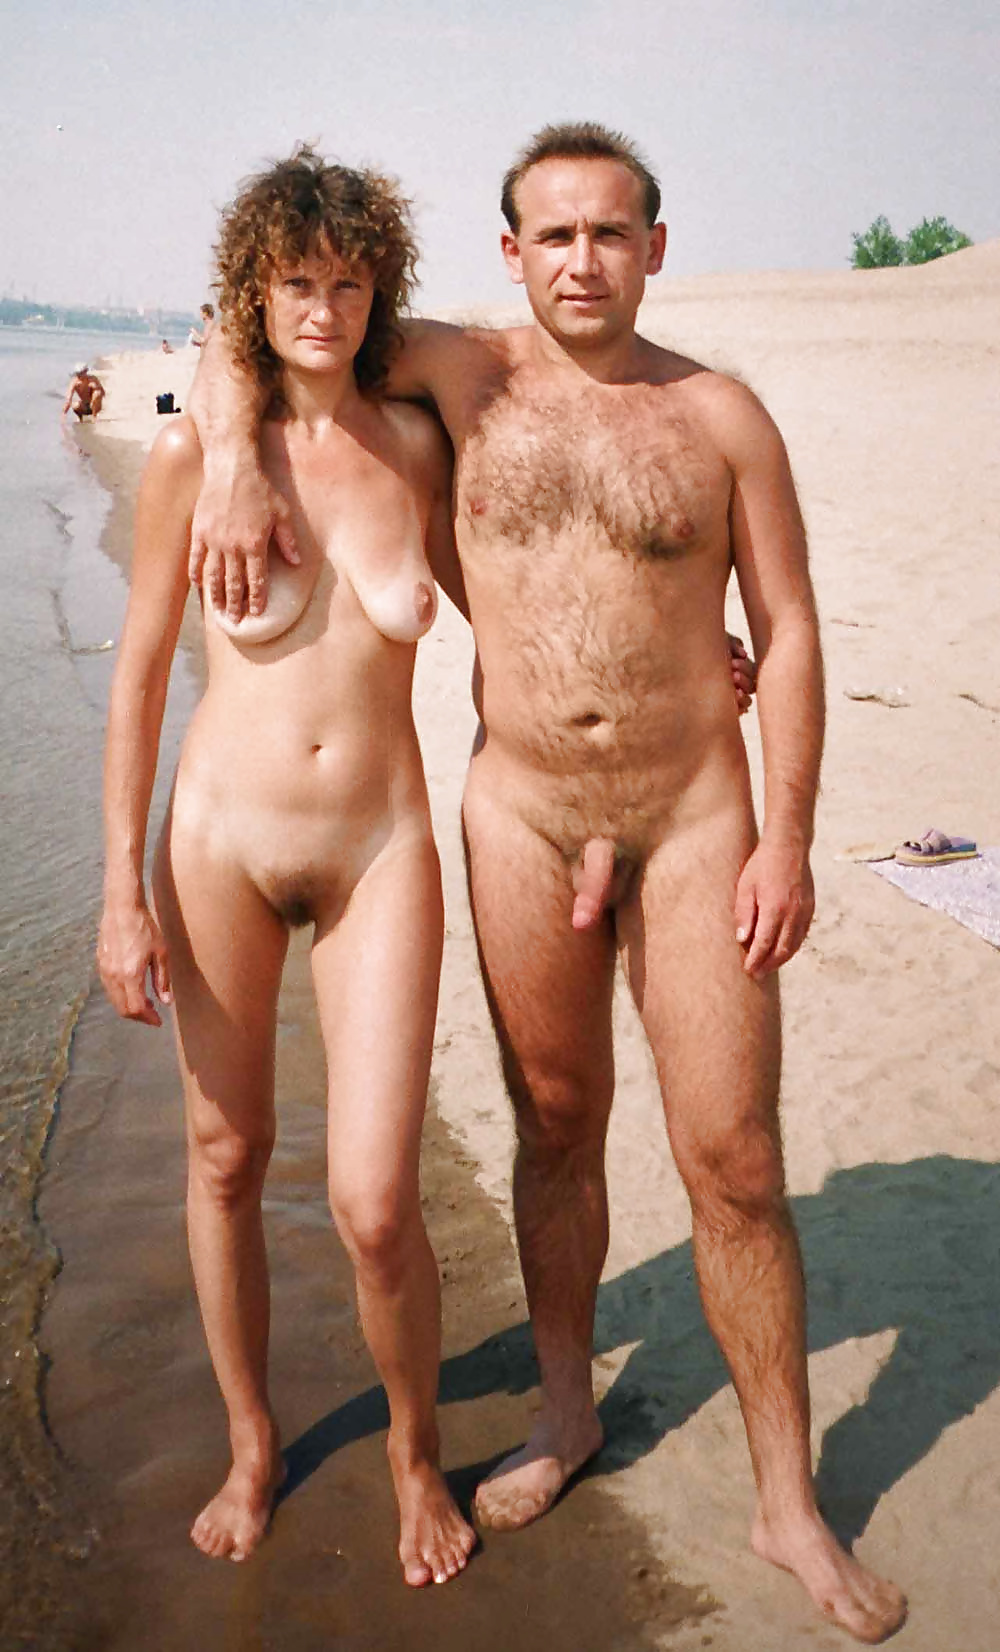 Naturism couples galleries, i want face pussy woman